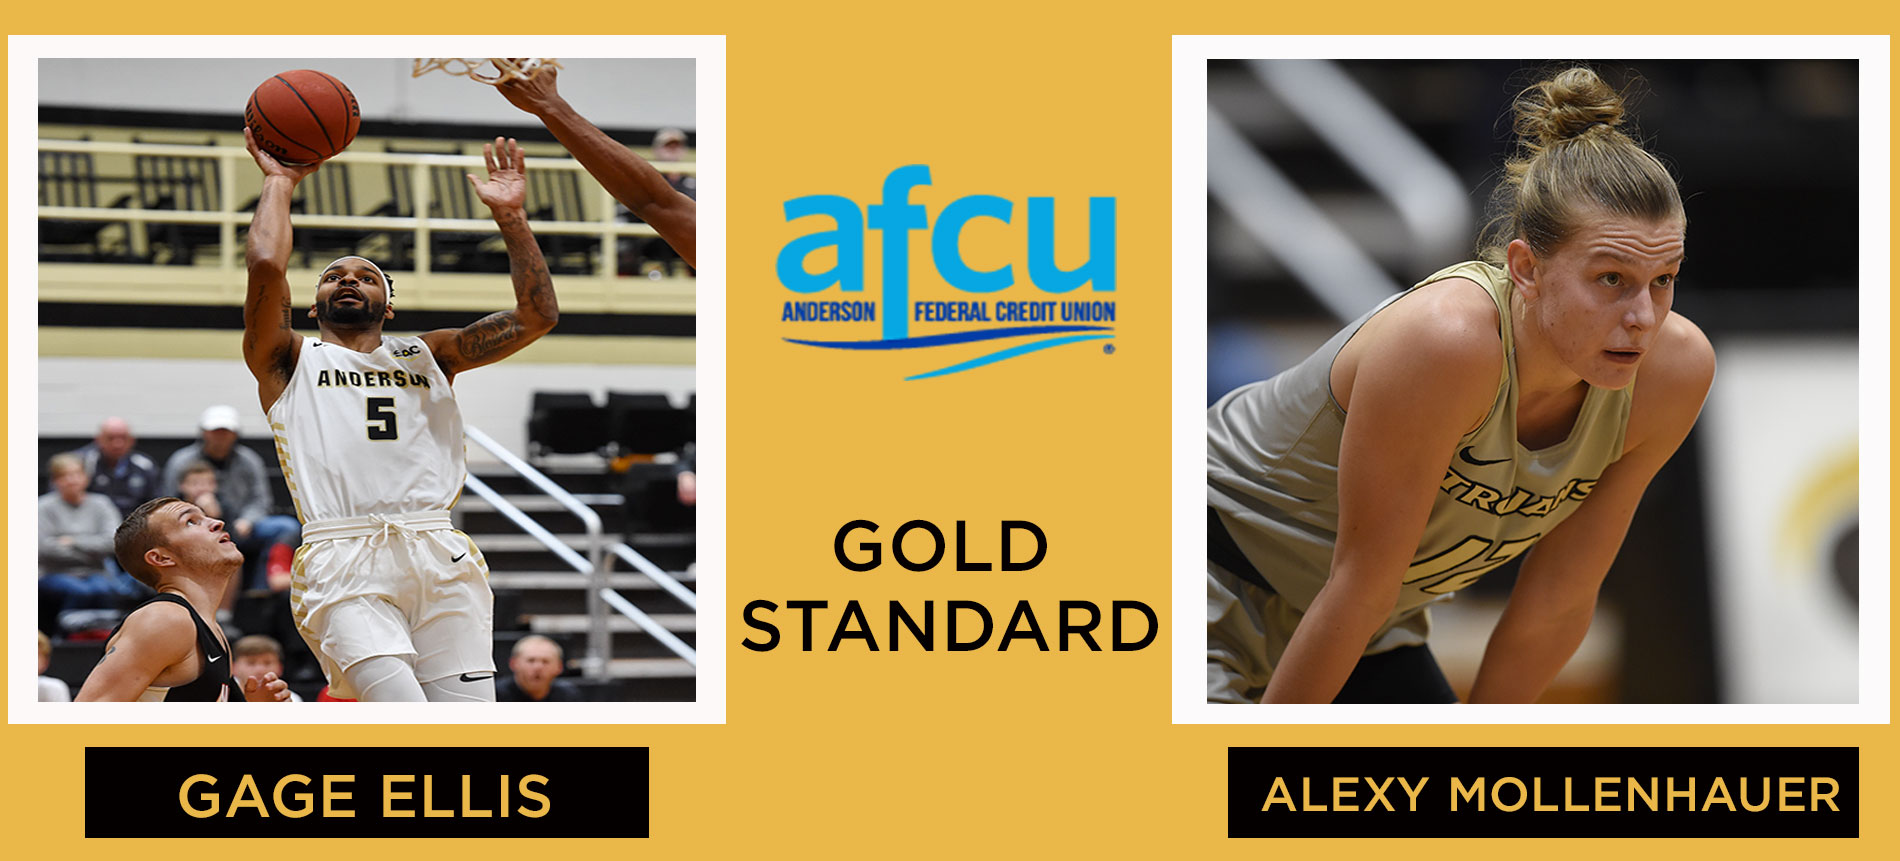 Women's Basketball's Alexy Mollenhauer and Men's Basketball's Gage Ellis Named to the AFCU Gold Standard